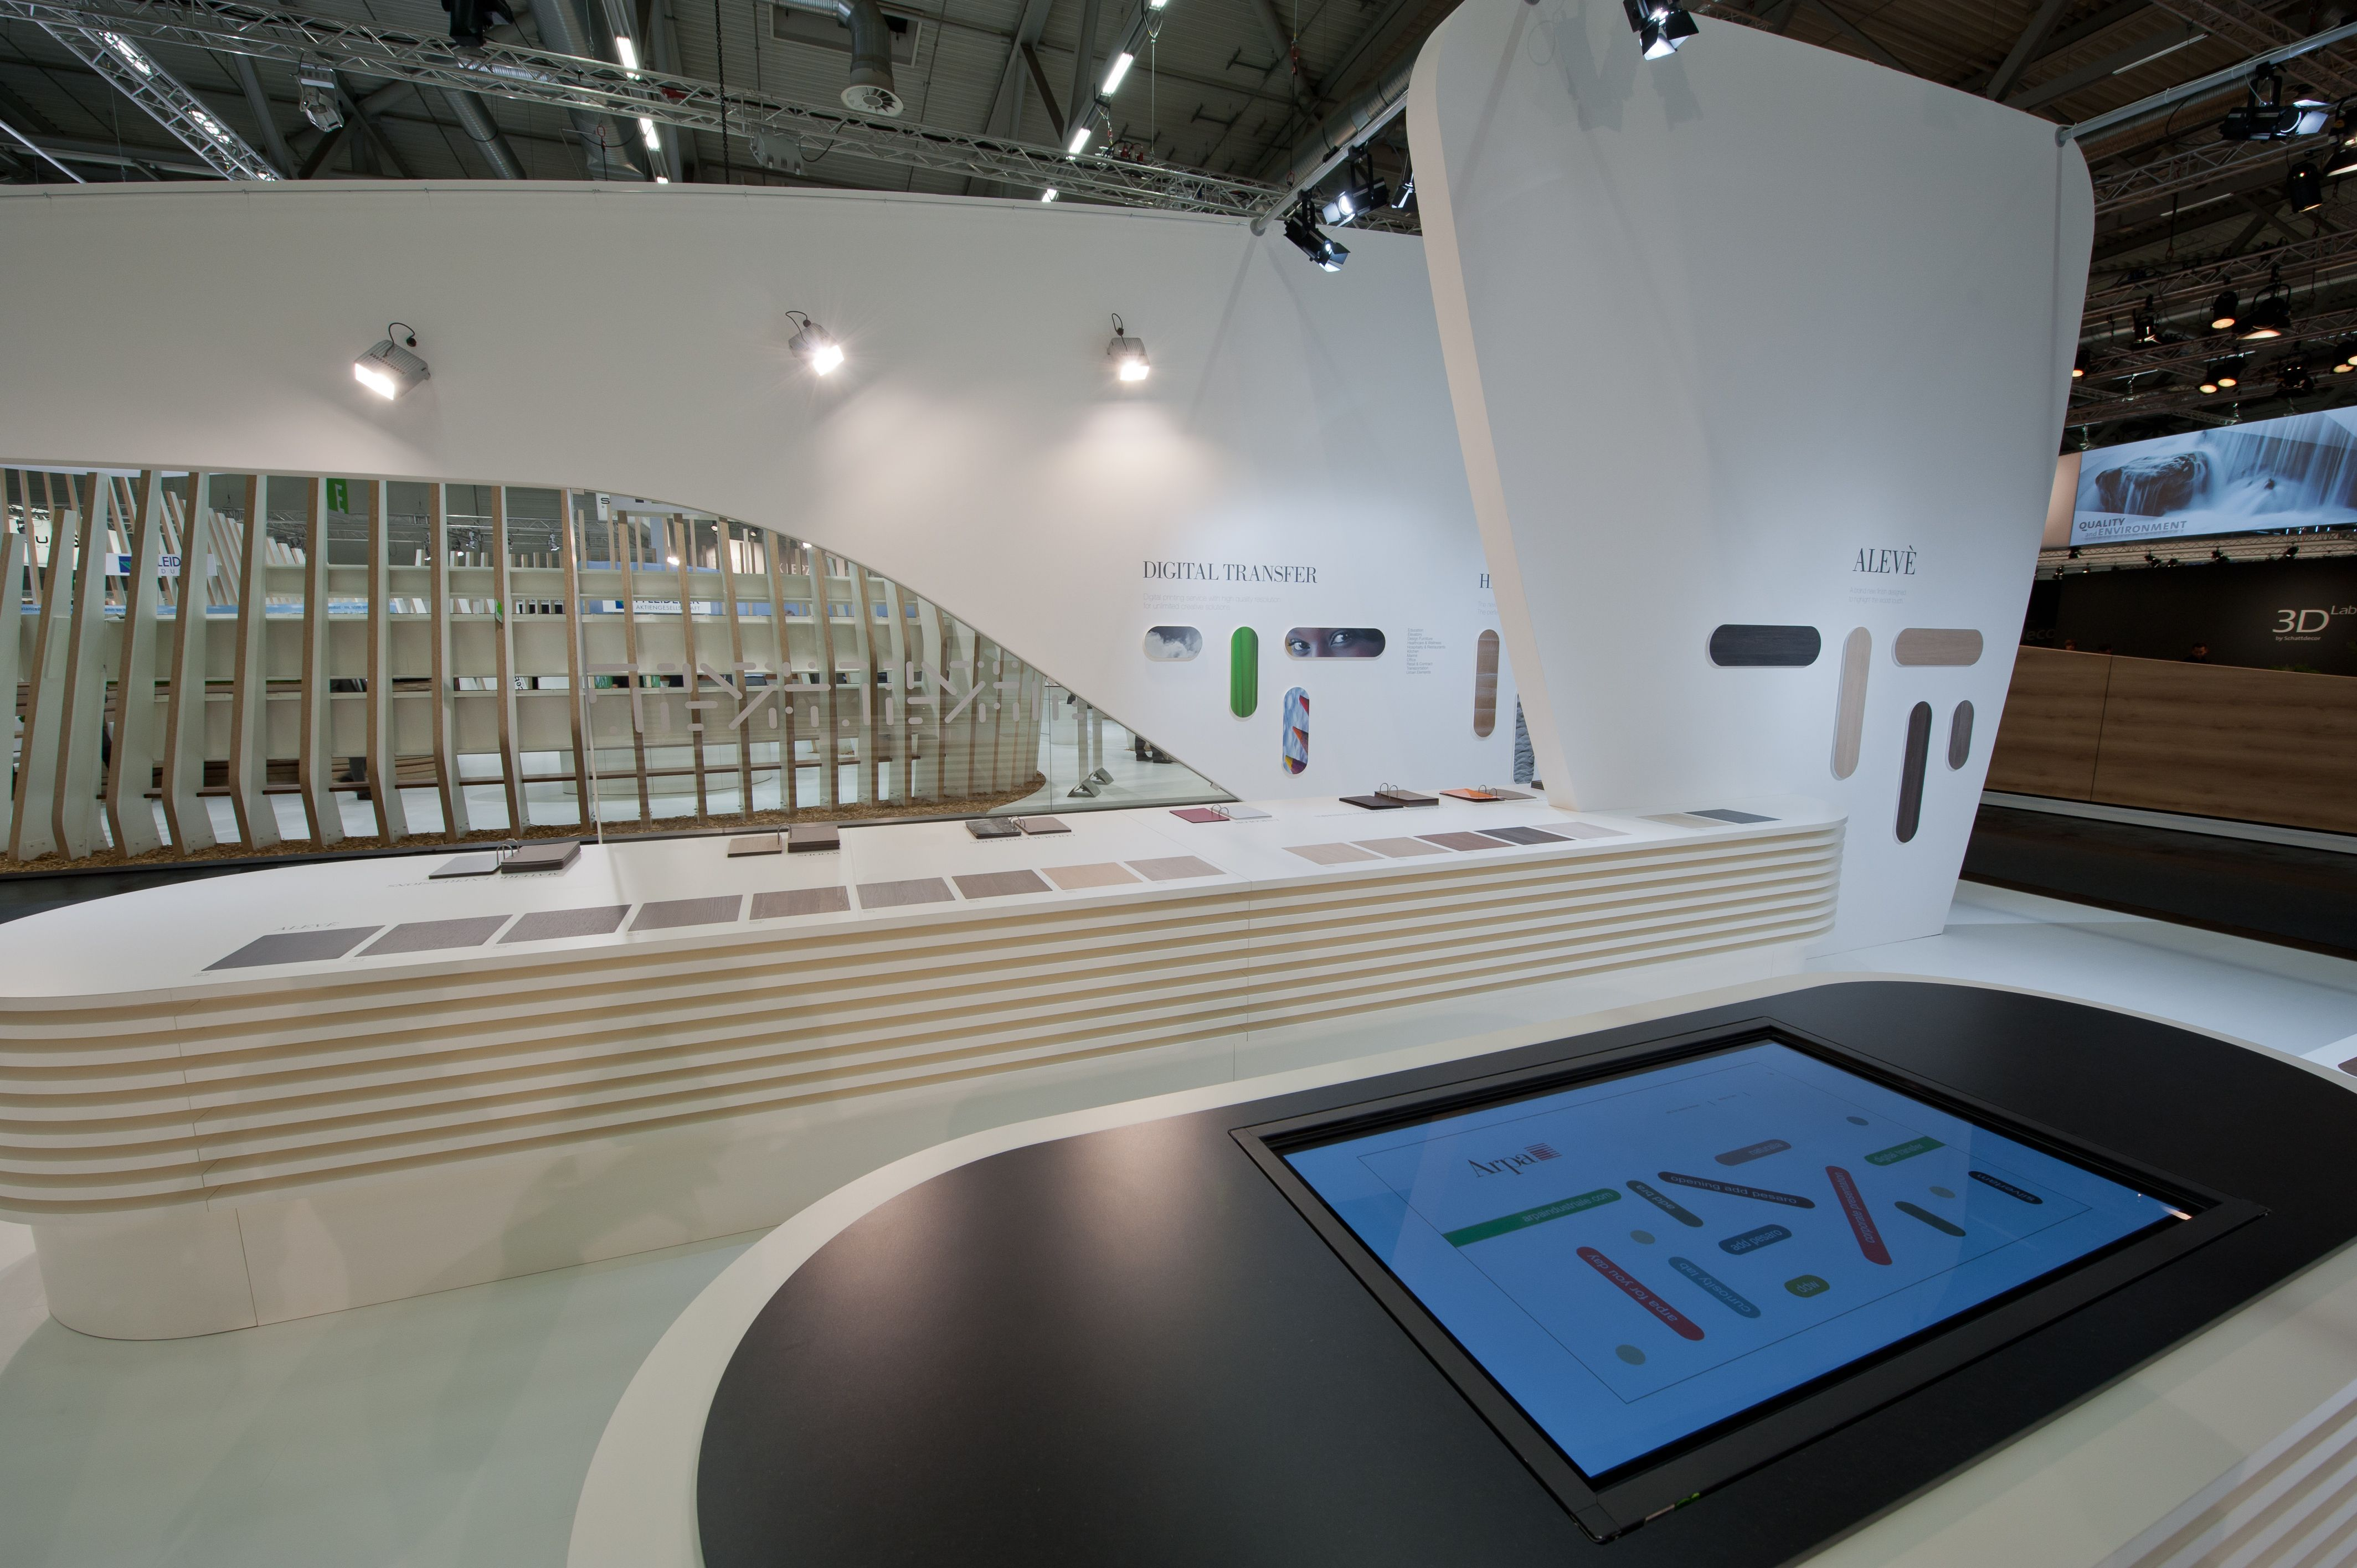 interactive desk made of naturalia, by arpa. arpa lab design, Mobel ideea